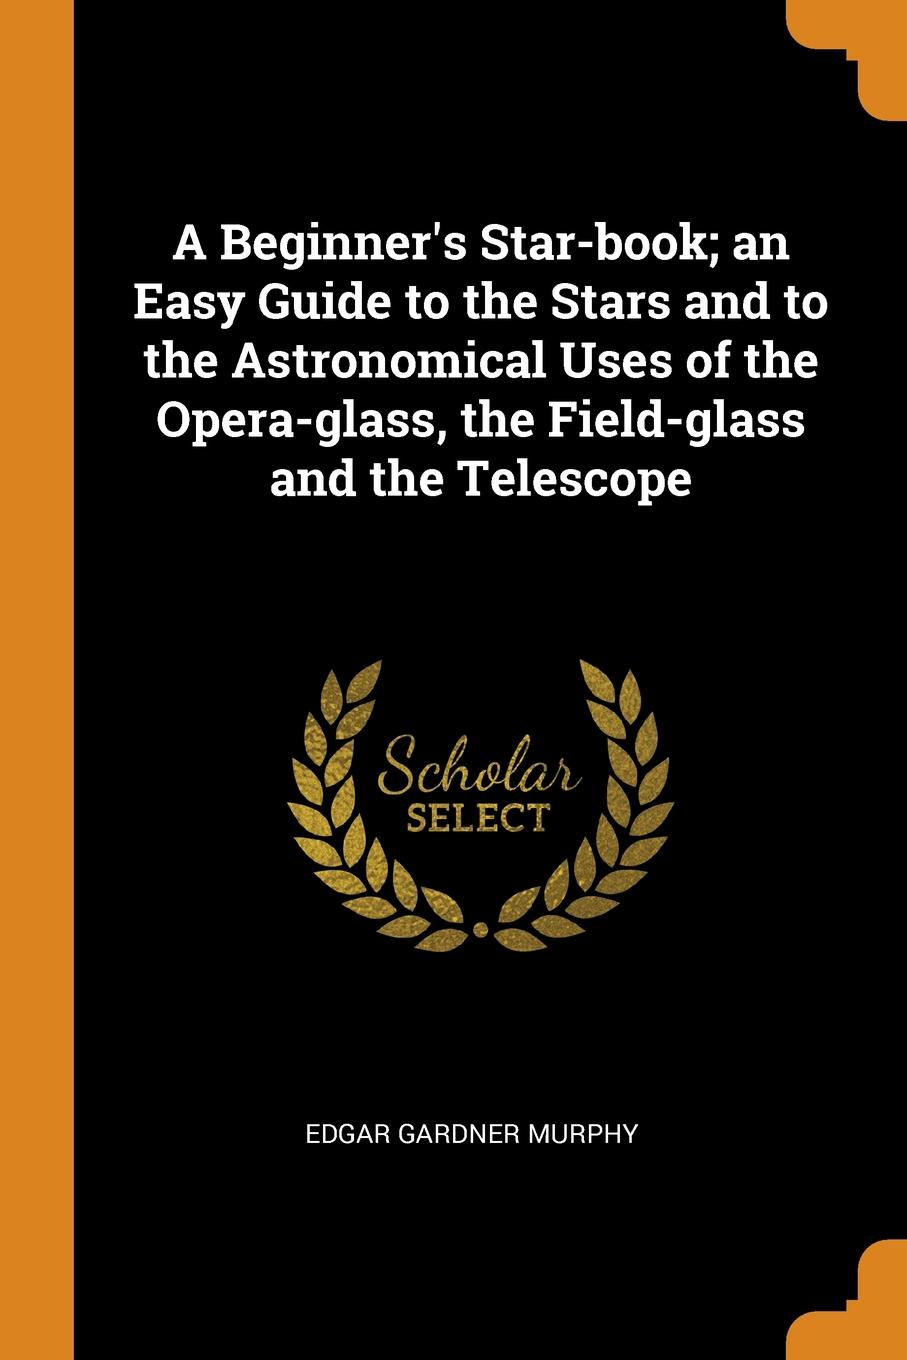 Edgar Gardner Murphy A Beginner.s Star-book; an Easy Guide to the Stars and to the Astronomical Uses of the Opera-glass, the Field-glass and the Telescope